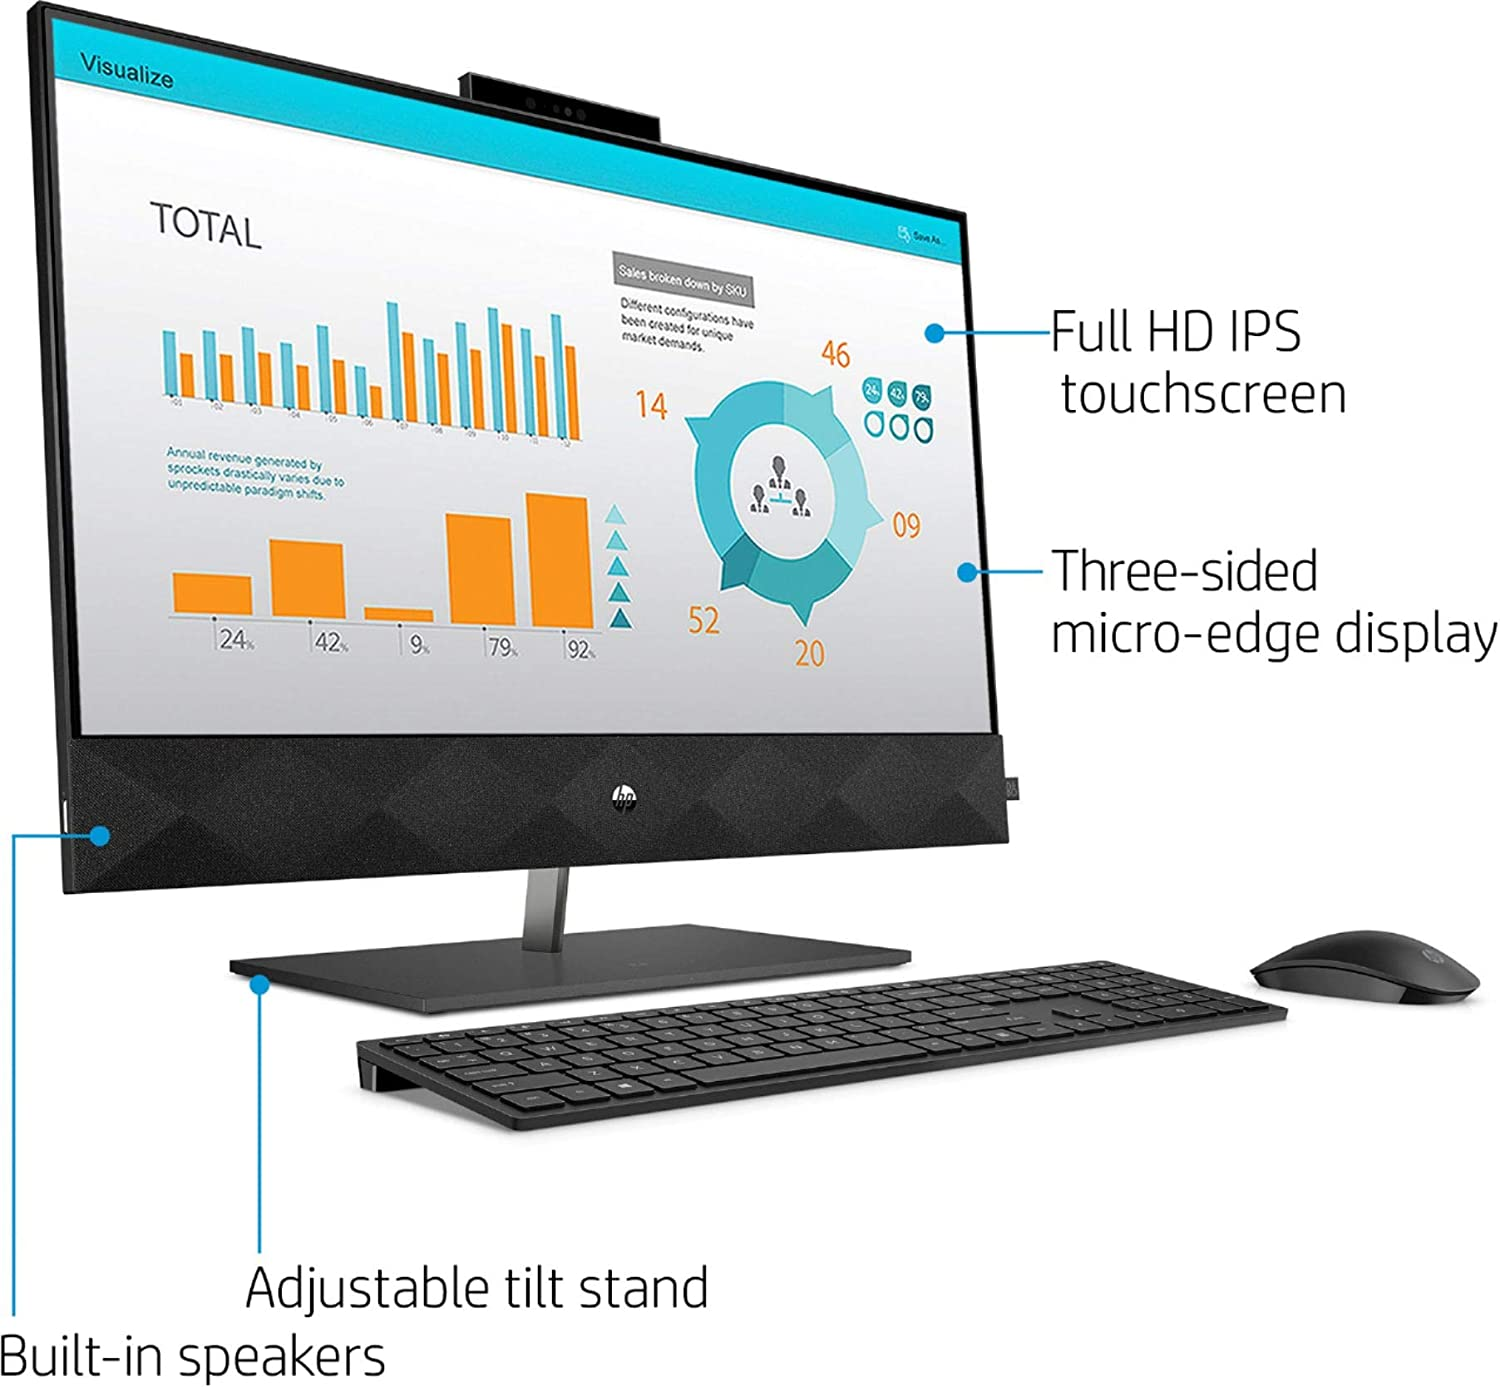 HP Pavilion 27 Touch Desktop 8TB SSD 64GB RAM Extreme PC Computer All-in-One Black Intel Core i9-10900 Processor w Turbo Boost to 5.20GHz, 64 GB RAM, 8 TB SSD, 27-inch FHD Touchscreen, Win 10